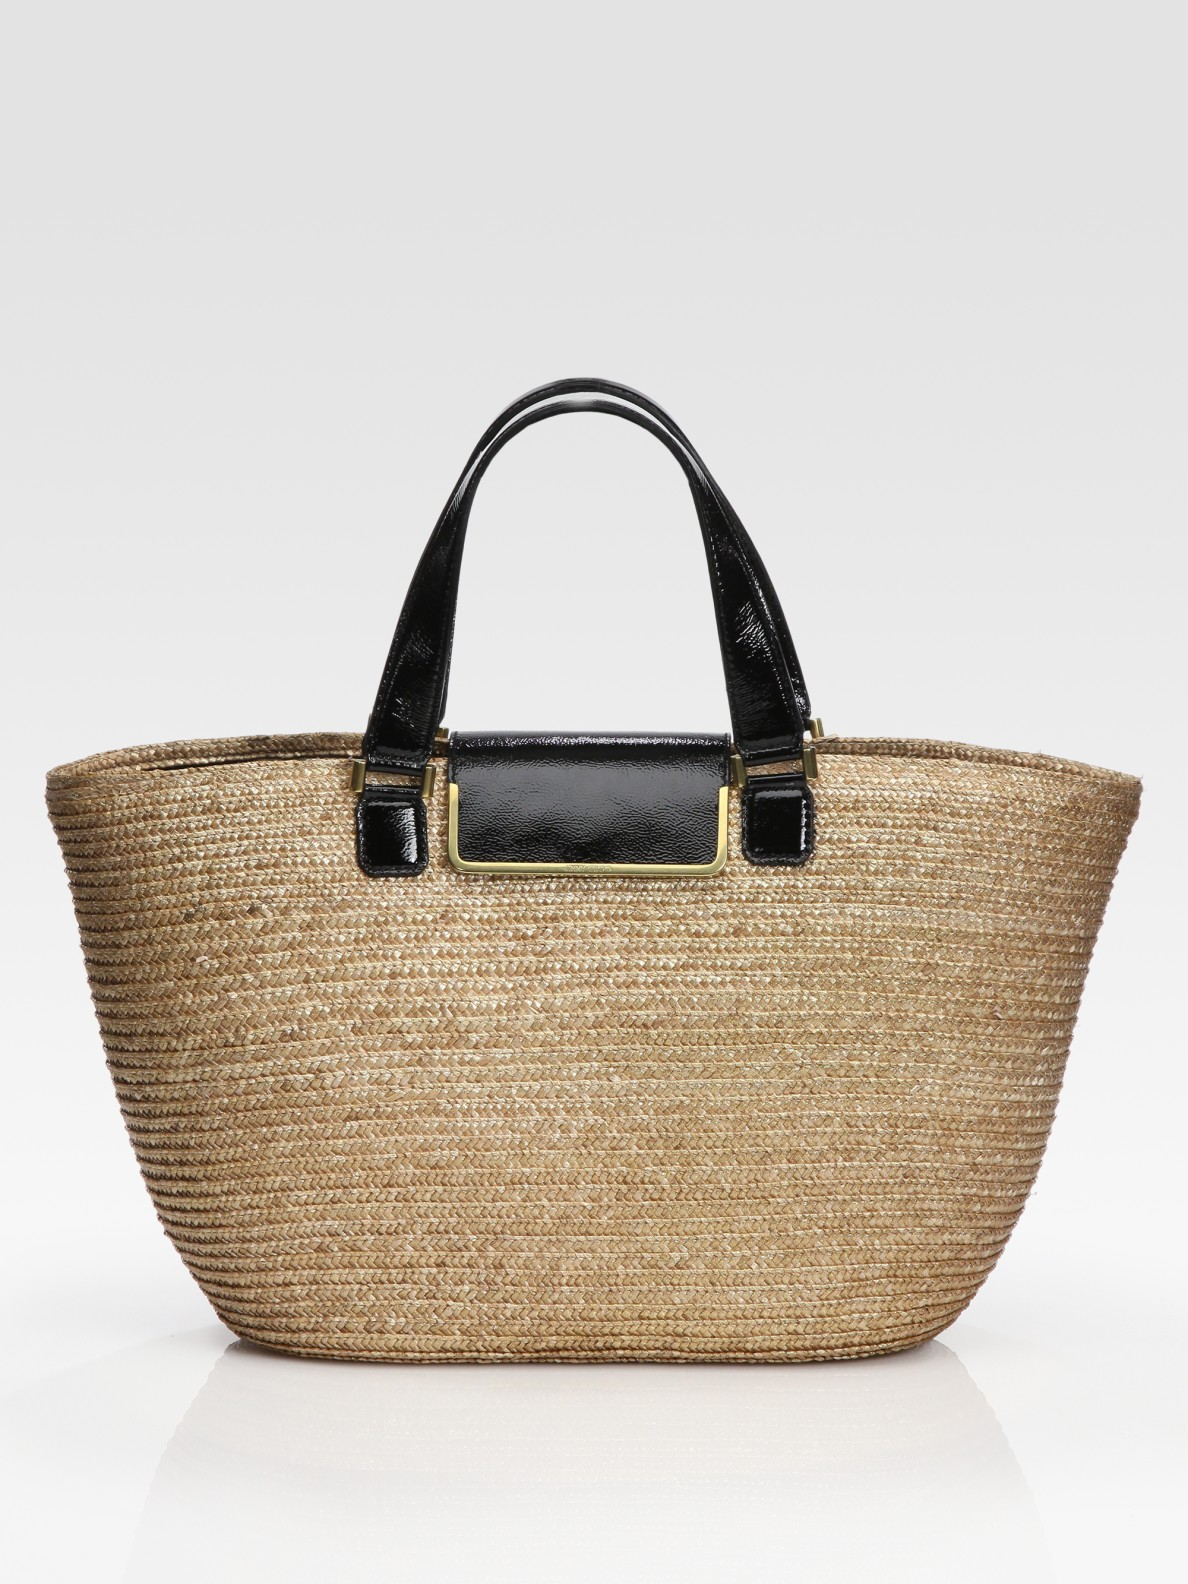 Jimmy choo Straw Tote Bag in Natural | Lyst